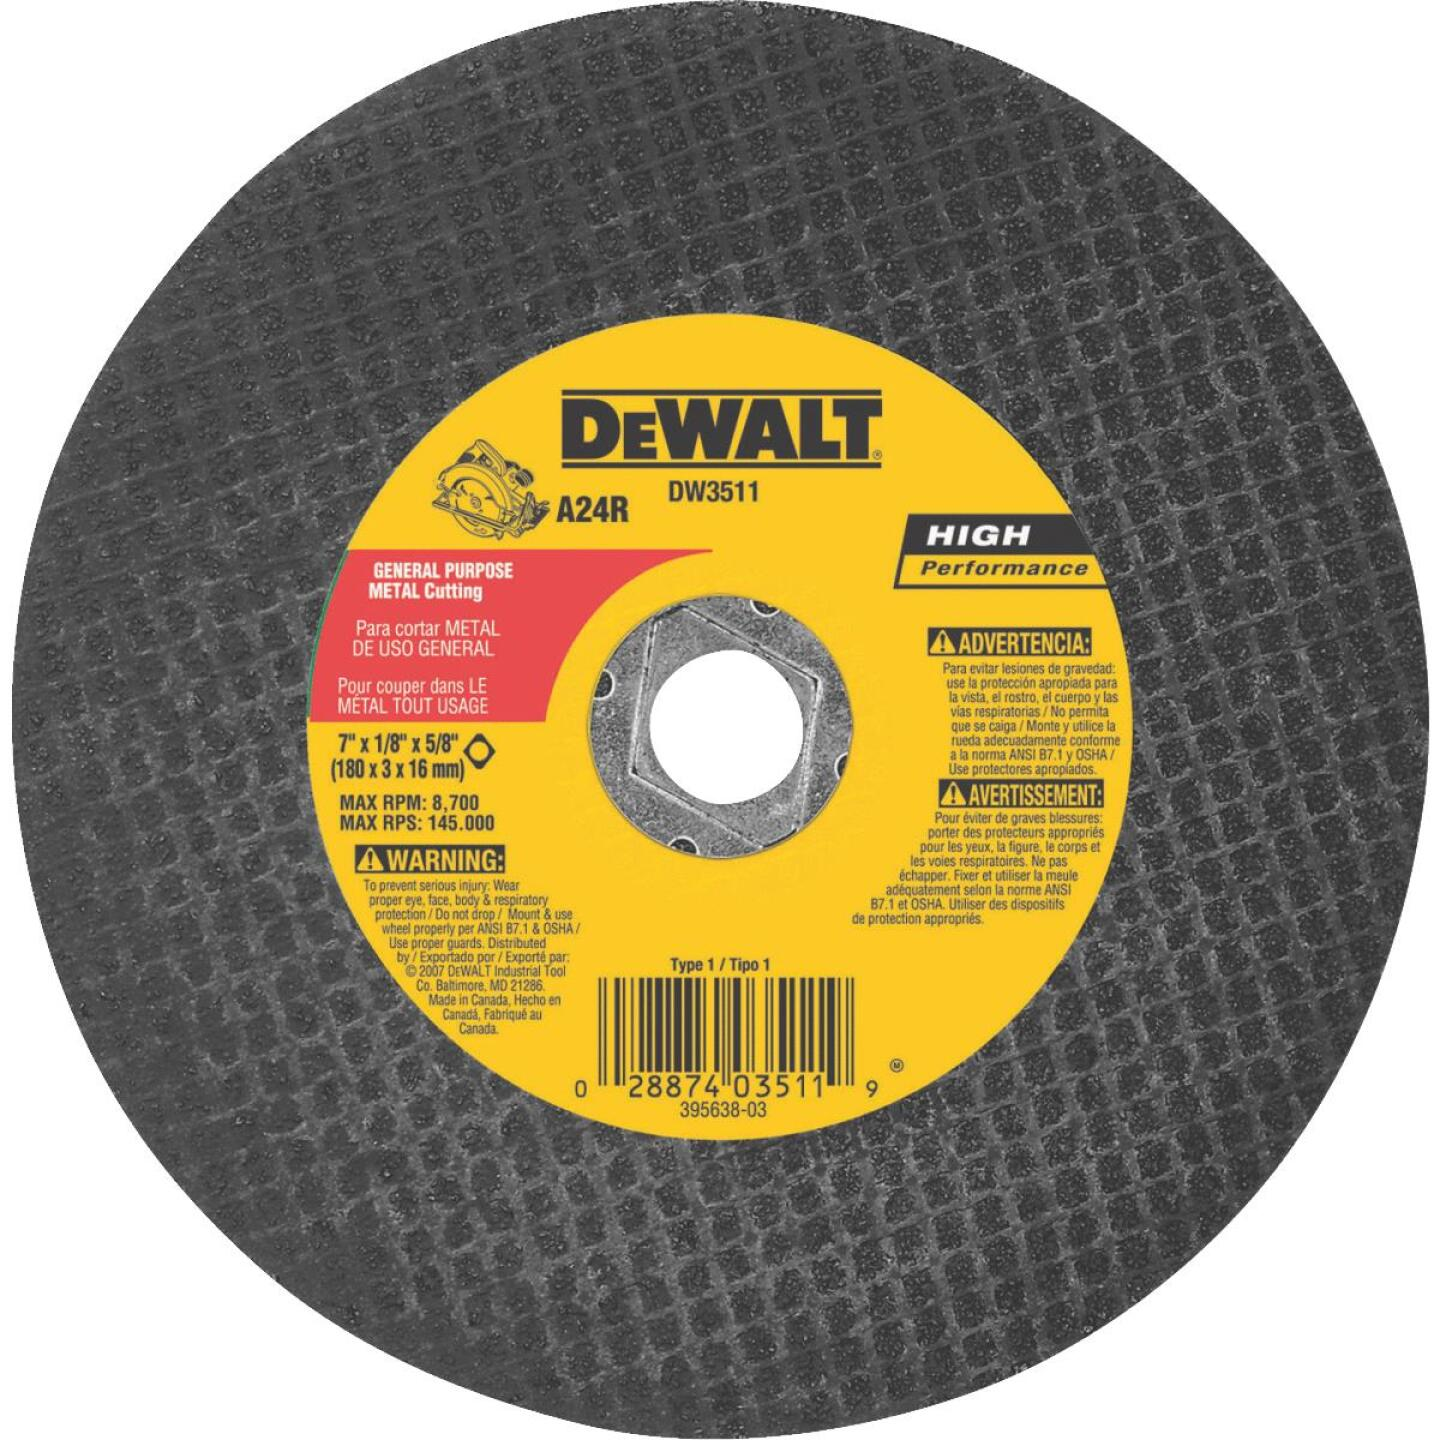 DeWalt HP Type 1 7 In. x 1/8 In. x 5/8 In. Metal Cut-Off Wheel Image 1